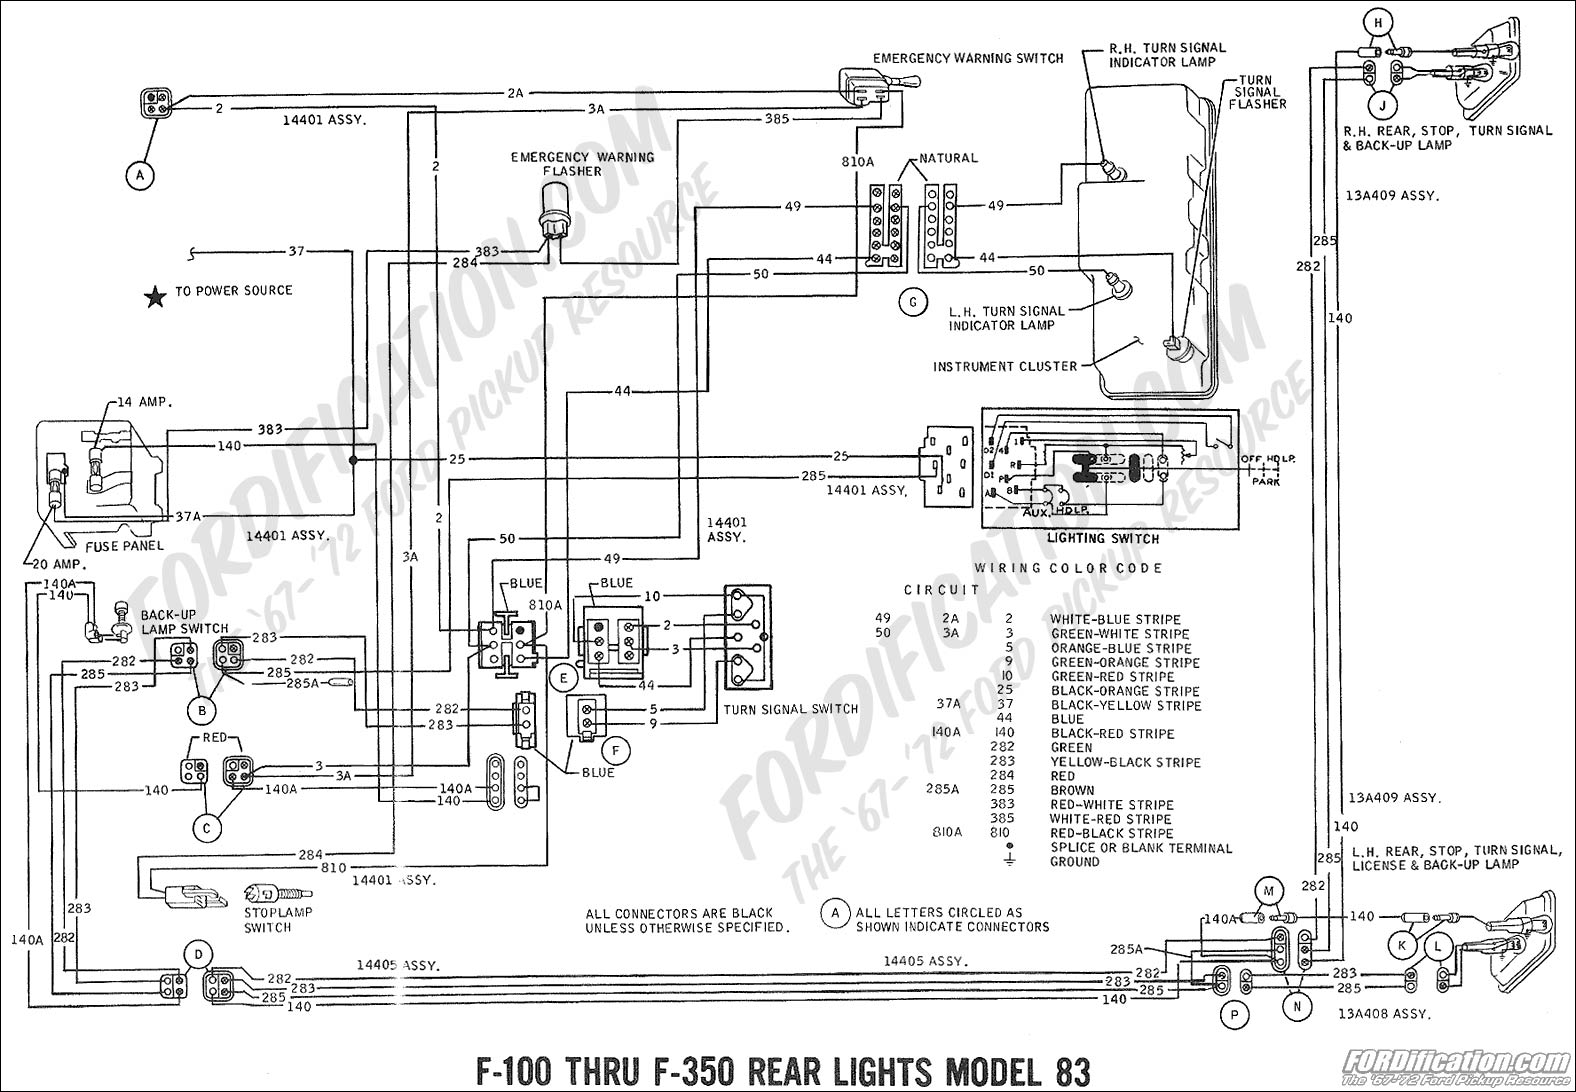 ford truck technical drawings and schematics section h wiring 1969 f 100 f 250 rear lights model 83 02